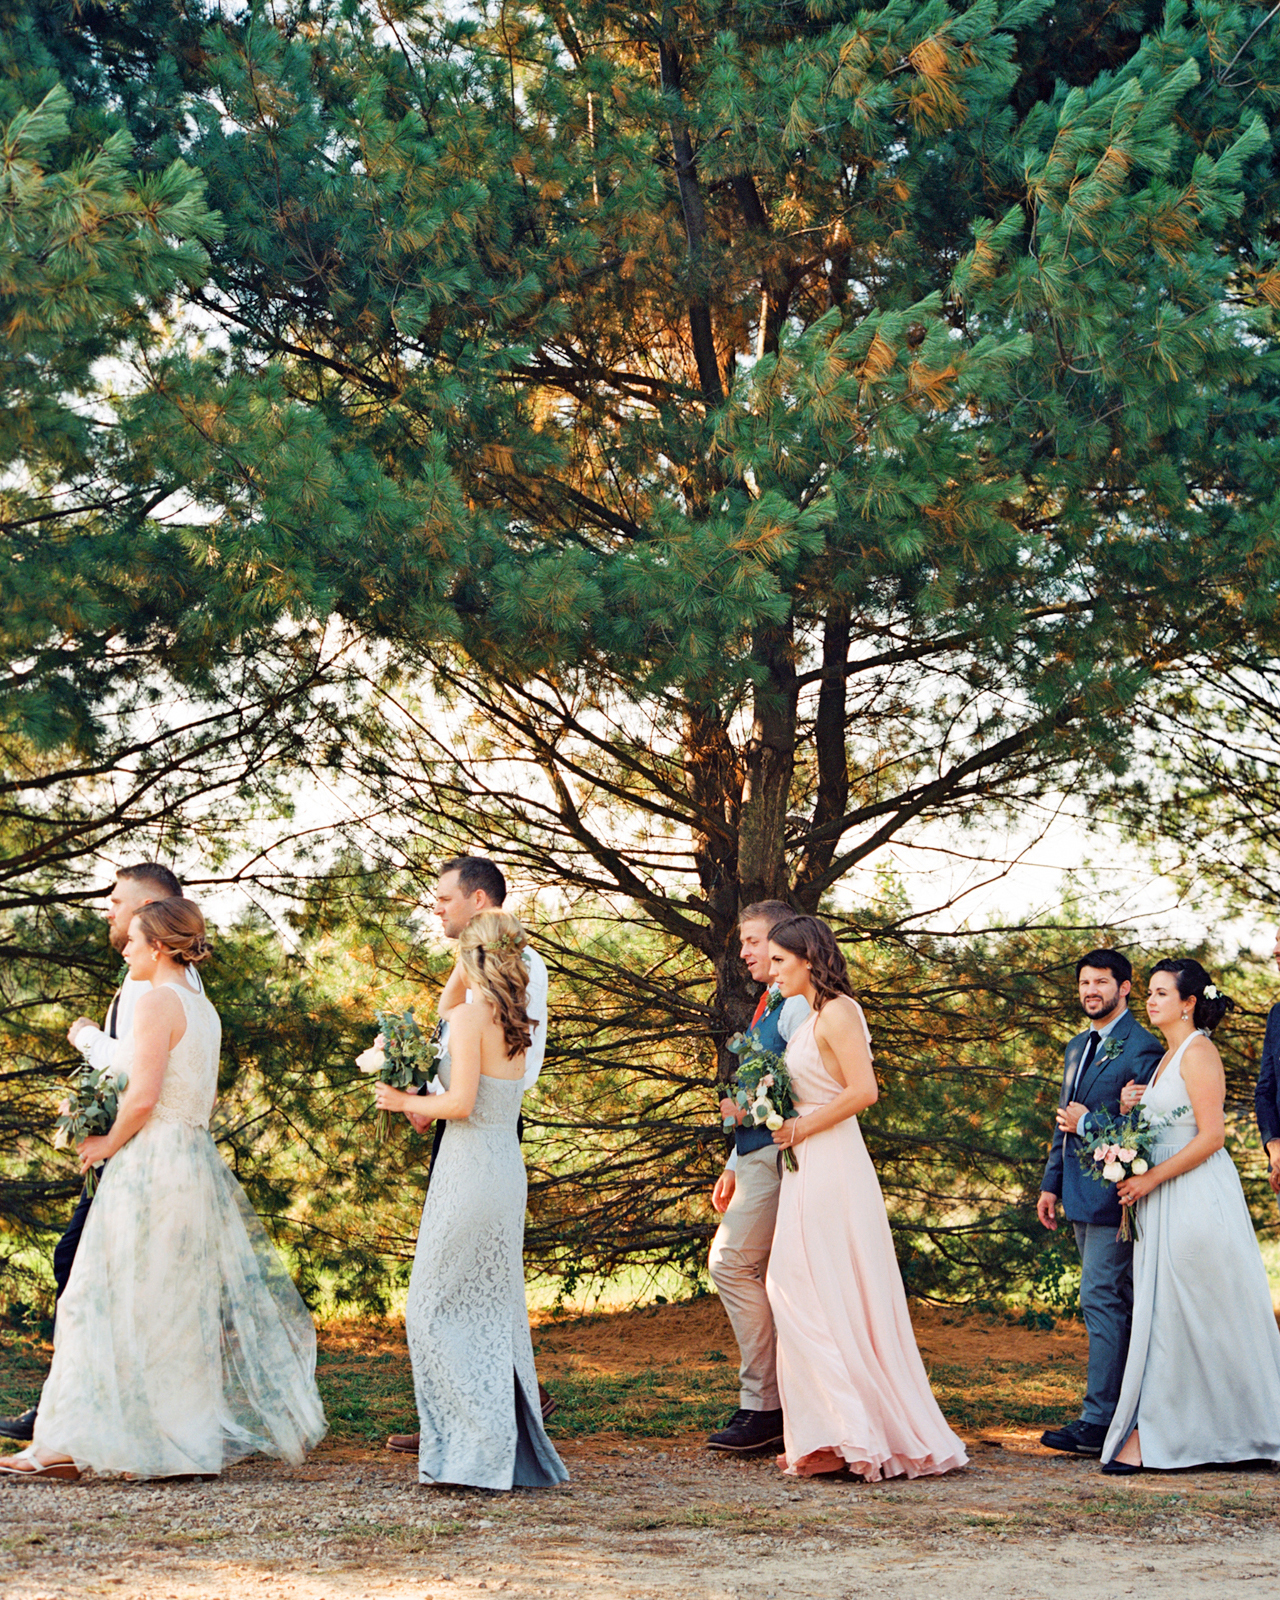 rachel elijah wedding processional wedding party